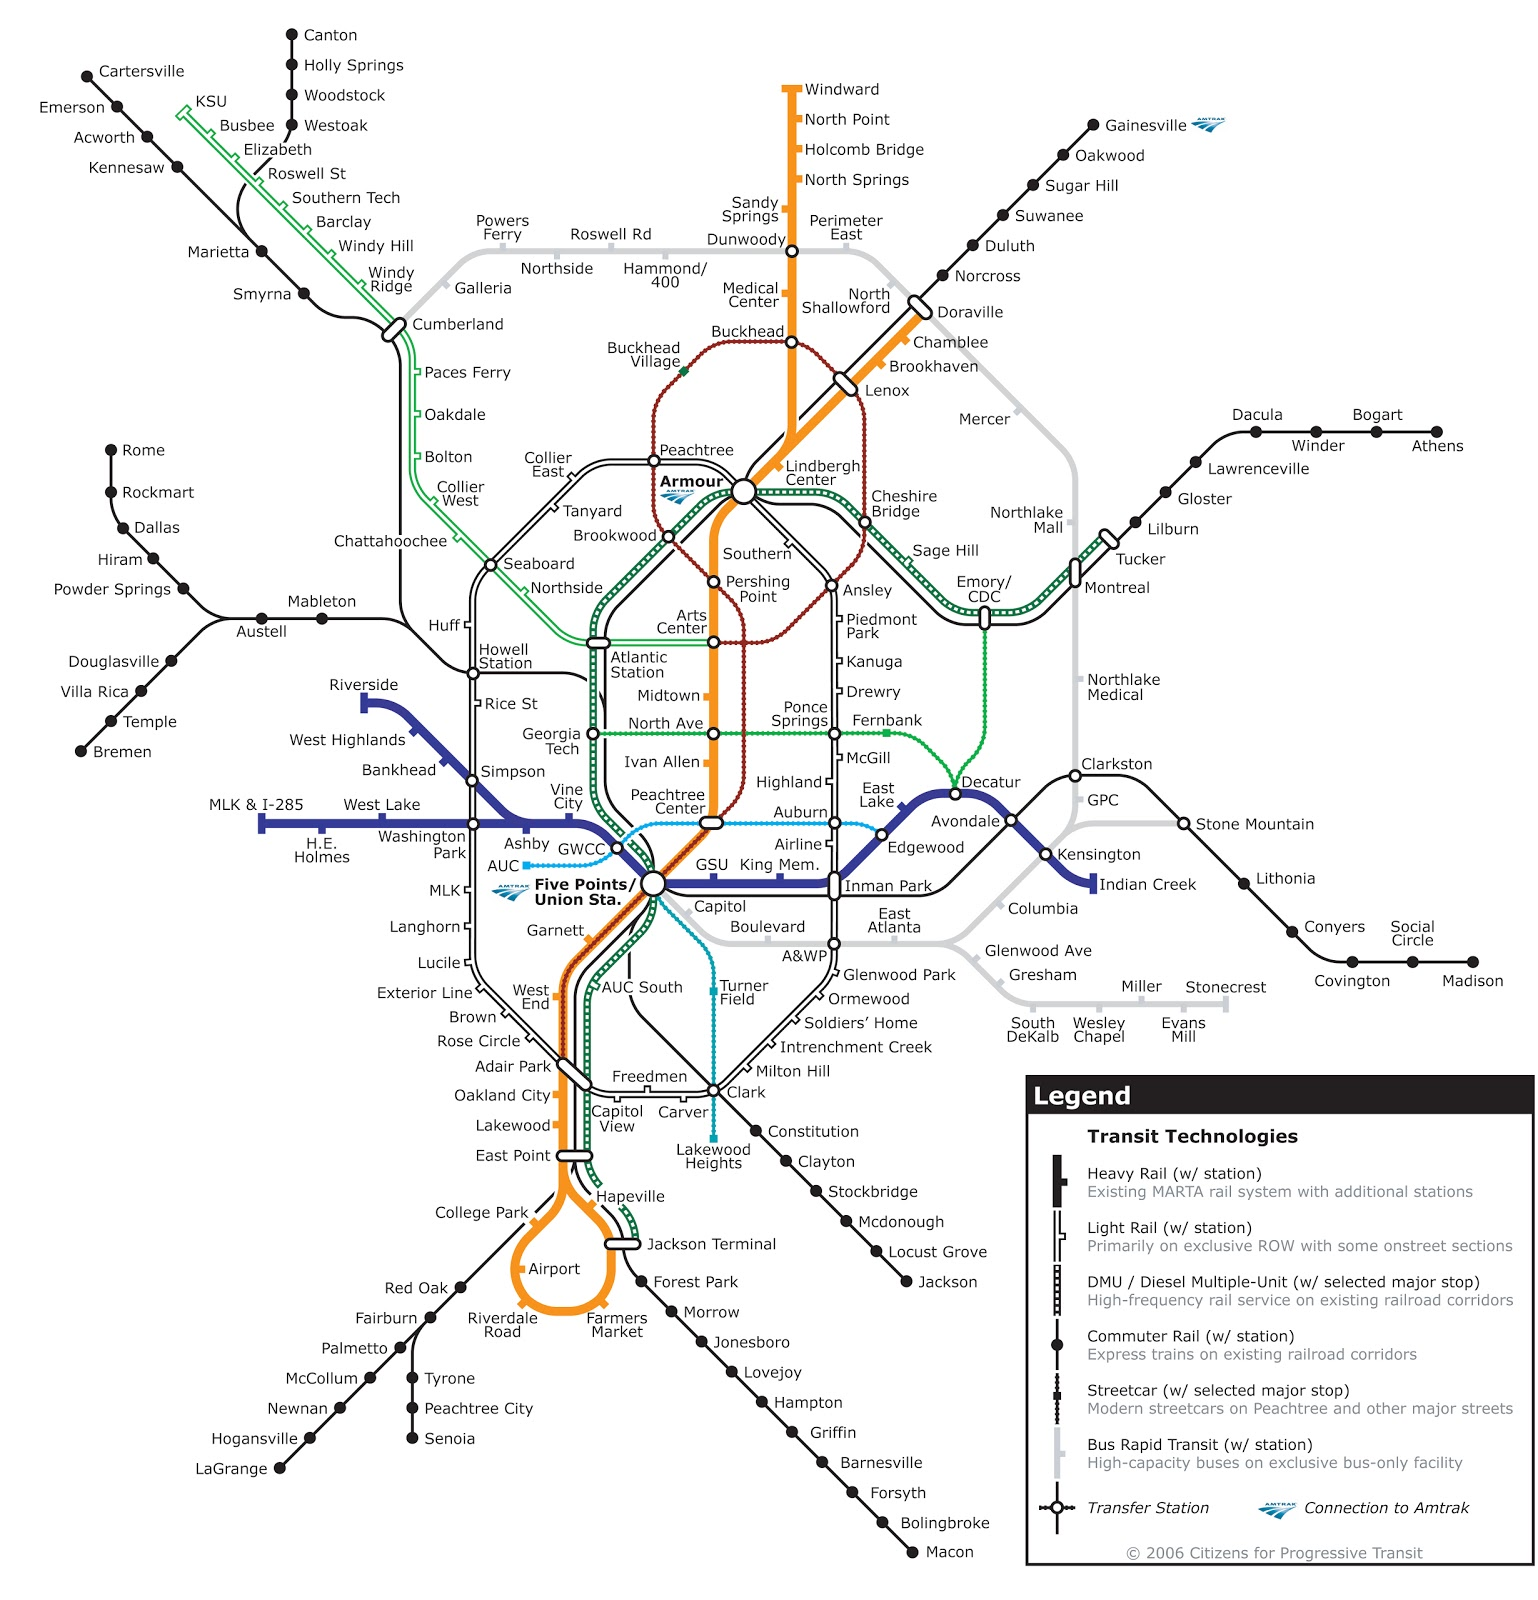 MARTA reimagined Atlanta